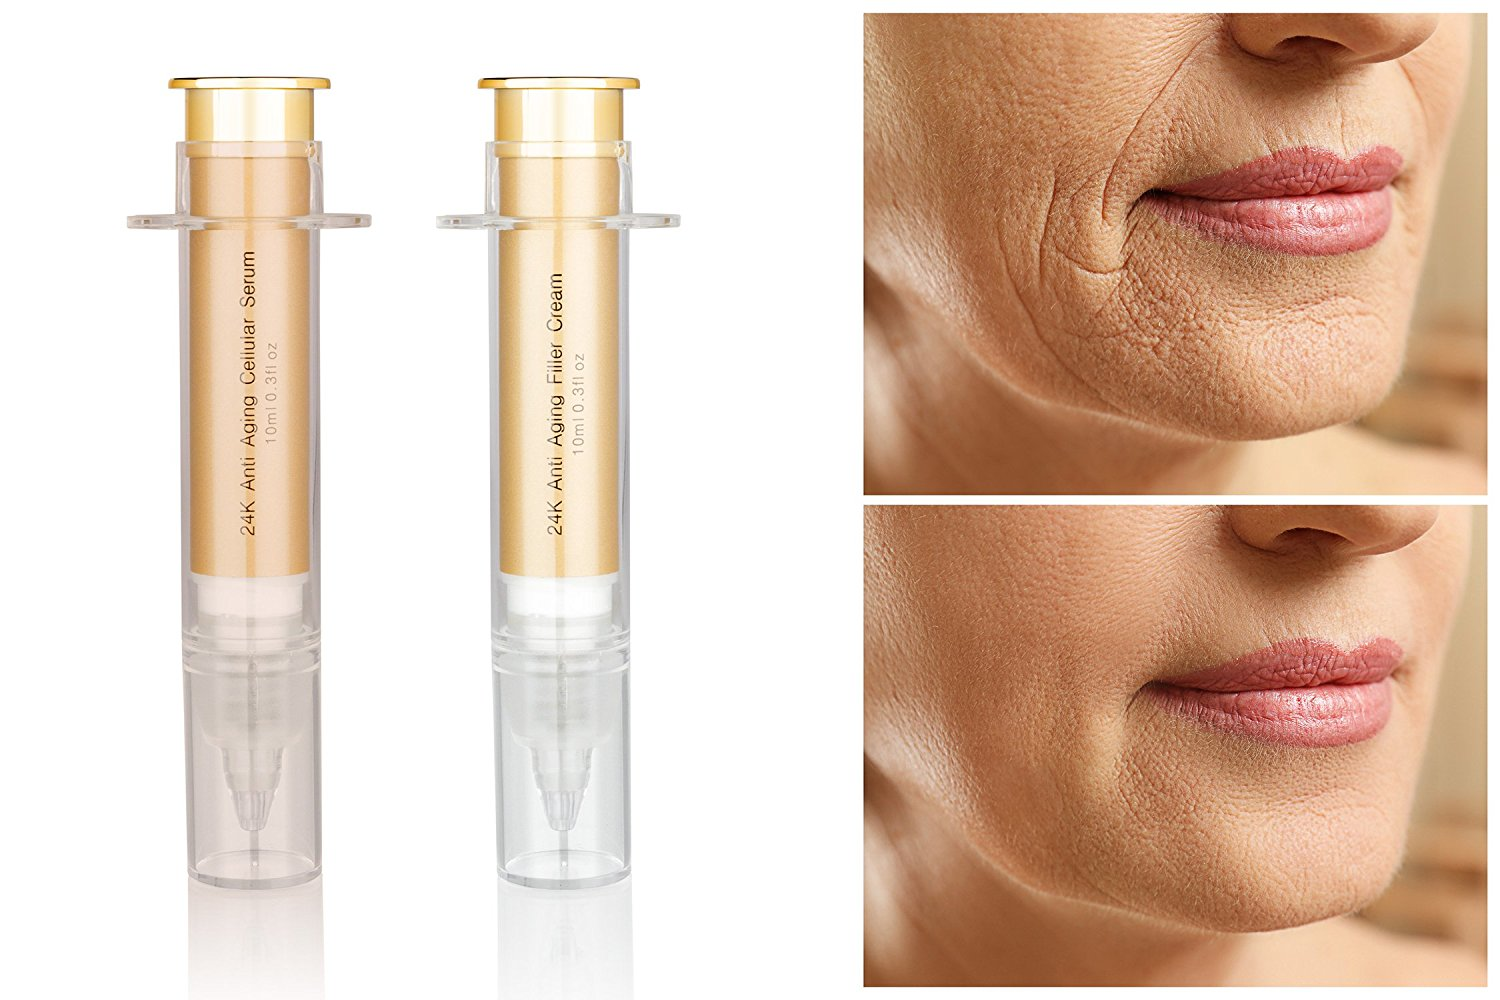 24K Lifting Facial Serum Ideal for Smoothing of Fine Lines and Wrinkles - 2 Oz SKIN & CO Truffle Polishing Micro Exfoliating Face Grommage 8.4 fl oz